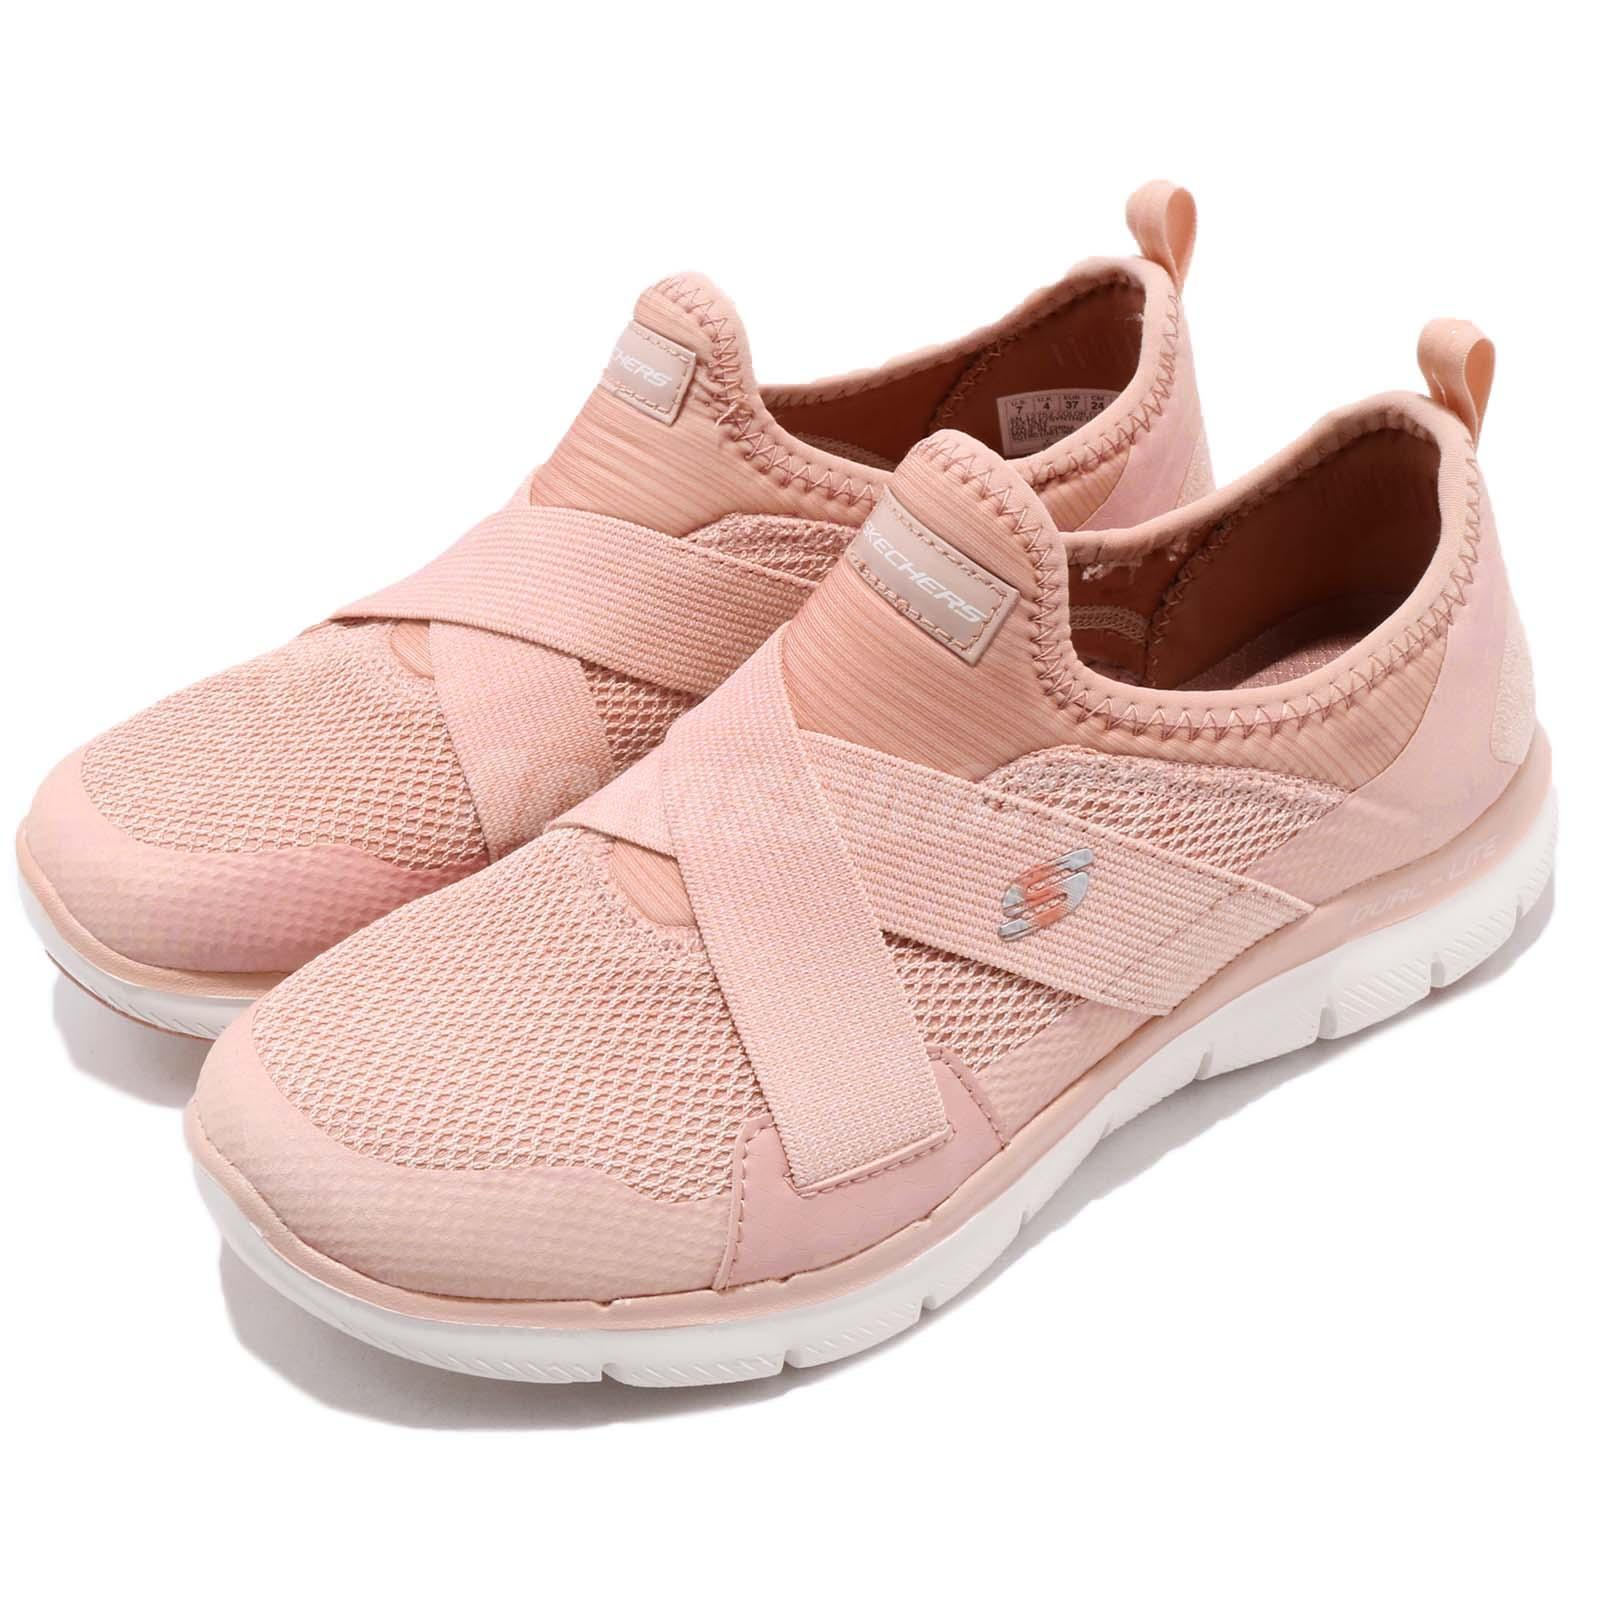 Skechers Flex Appeal 2.0-New Image Pink Women Slip On Shoes Sneakers 12752-ROS